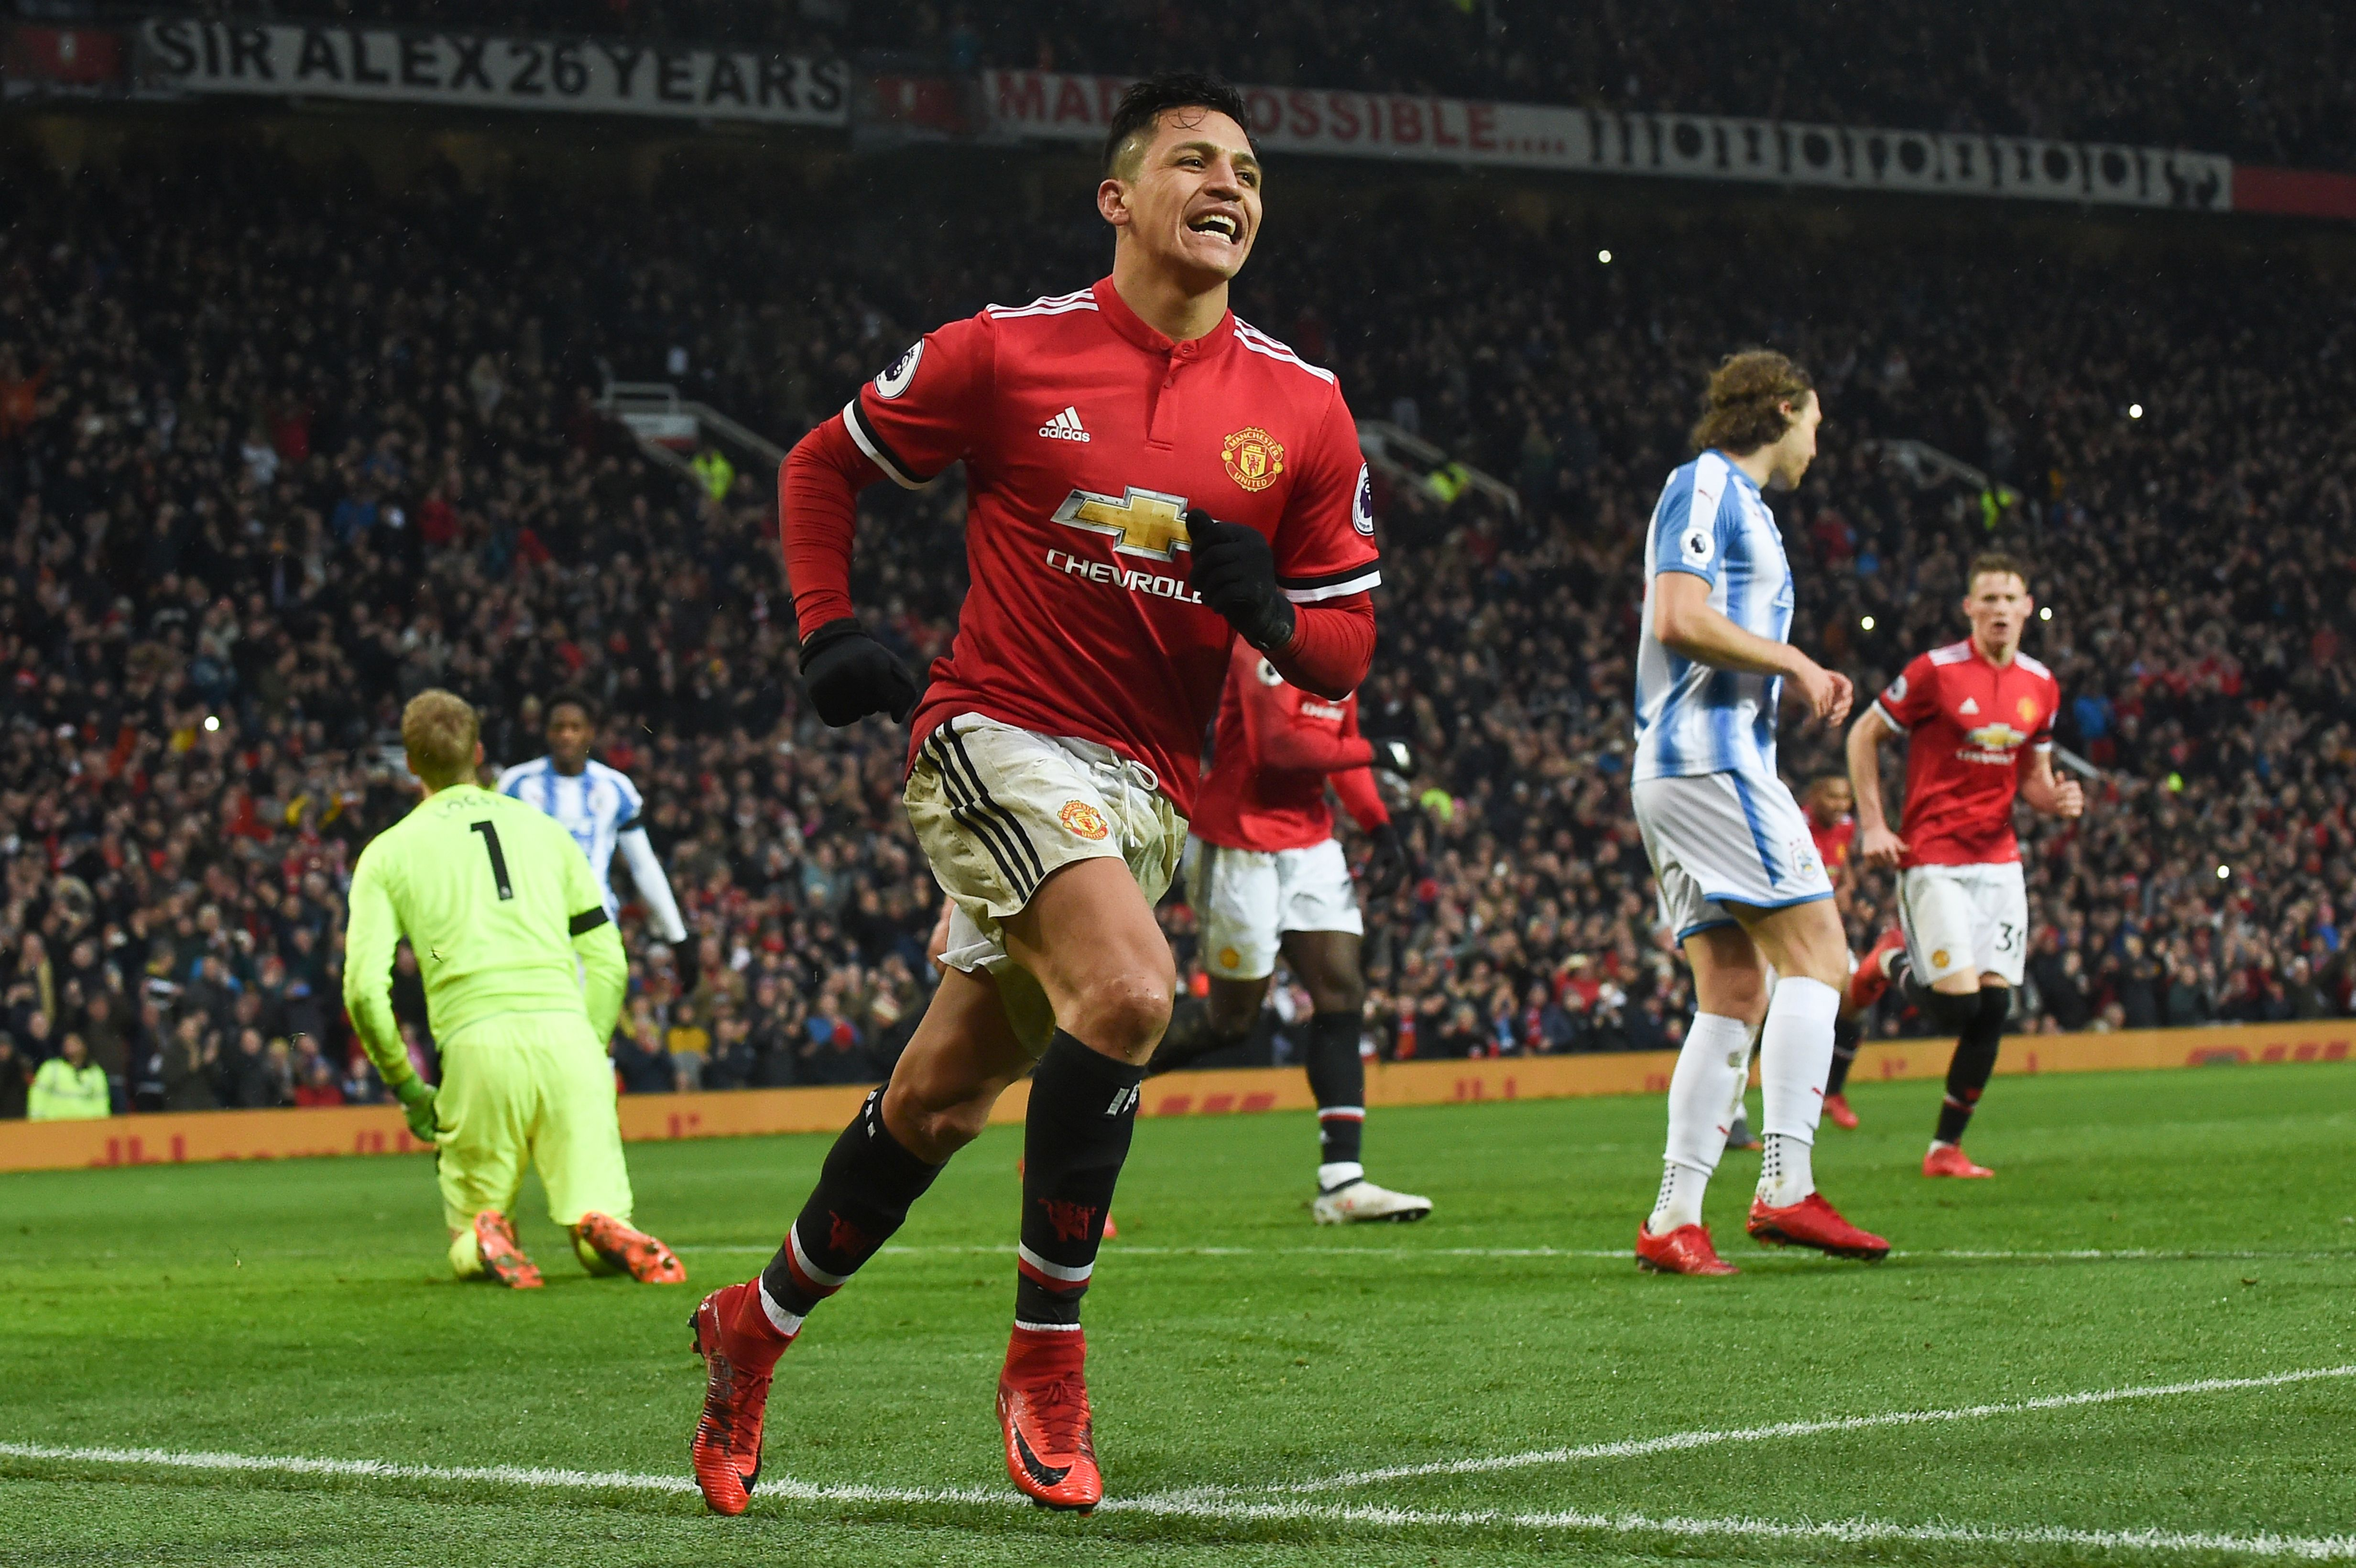 Alexis Sanchez celebrates his goal against Huddersfield